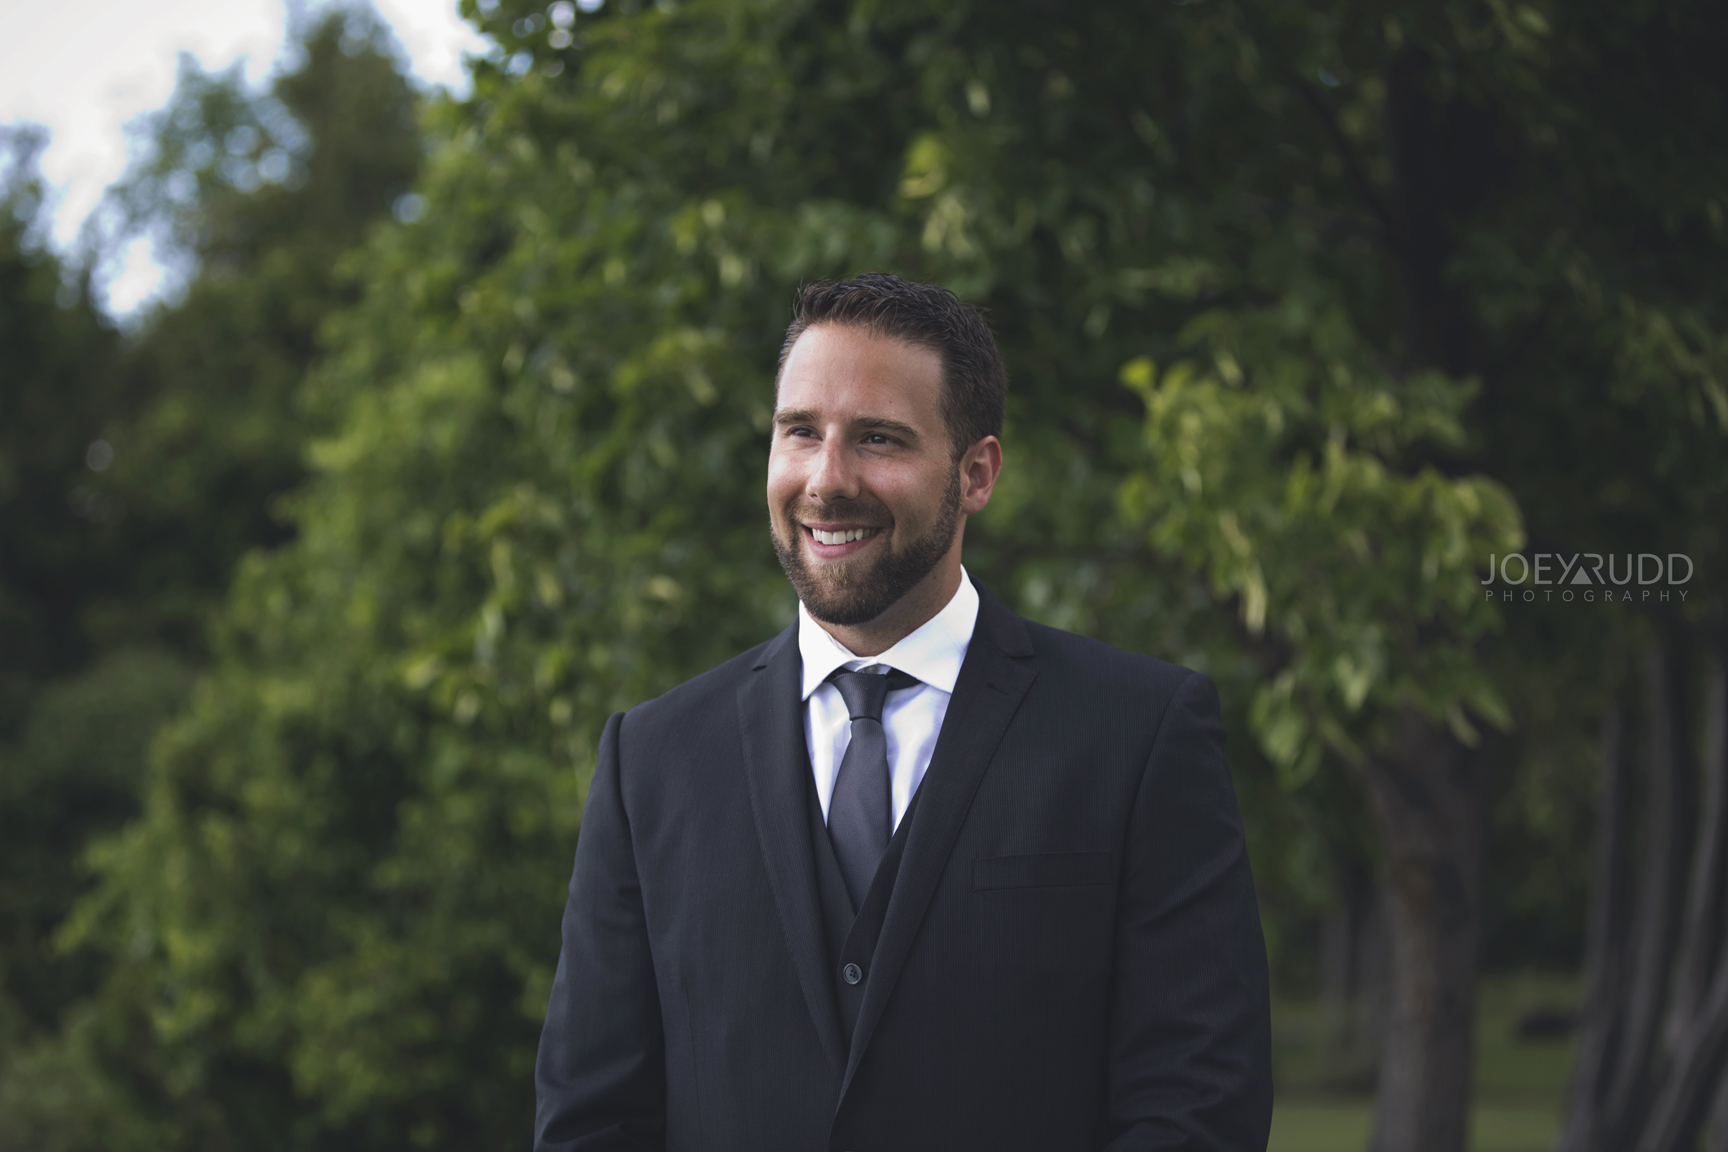 Calabogie Wedding at Barnet Park by Ottawa Wedding Photographer Joey Rudd Photography First Look Groom